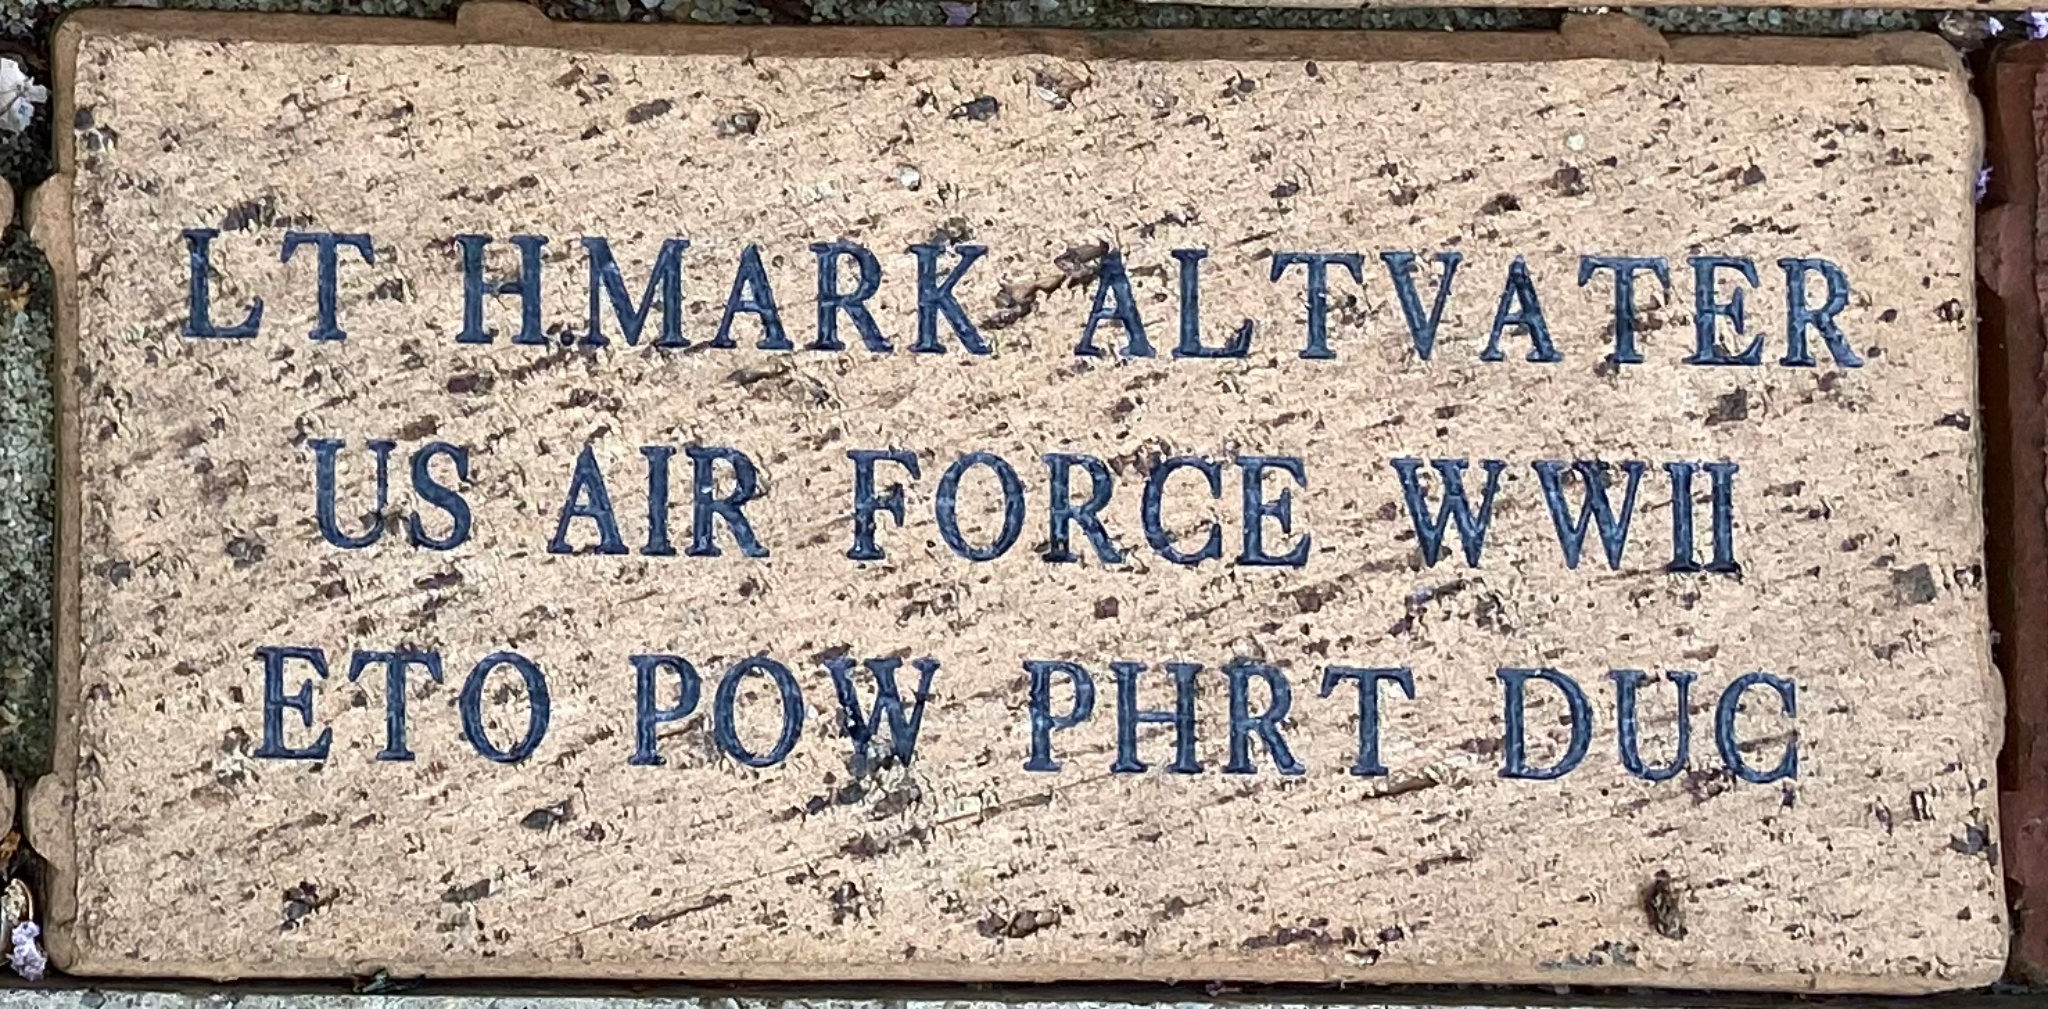 LT H.MARK ALTVATER US AIR FORCE WWII ETO POW PHRT DUC